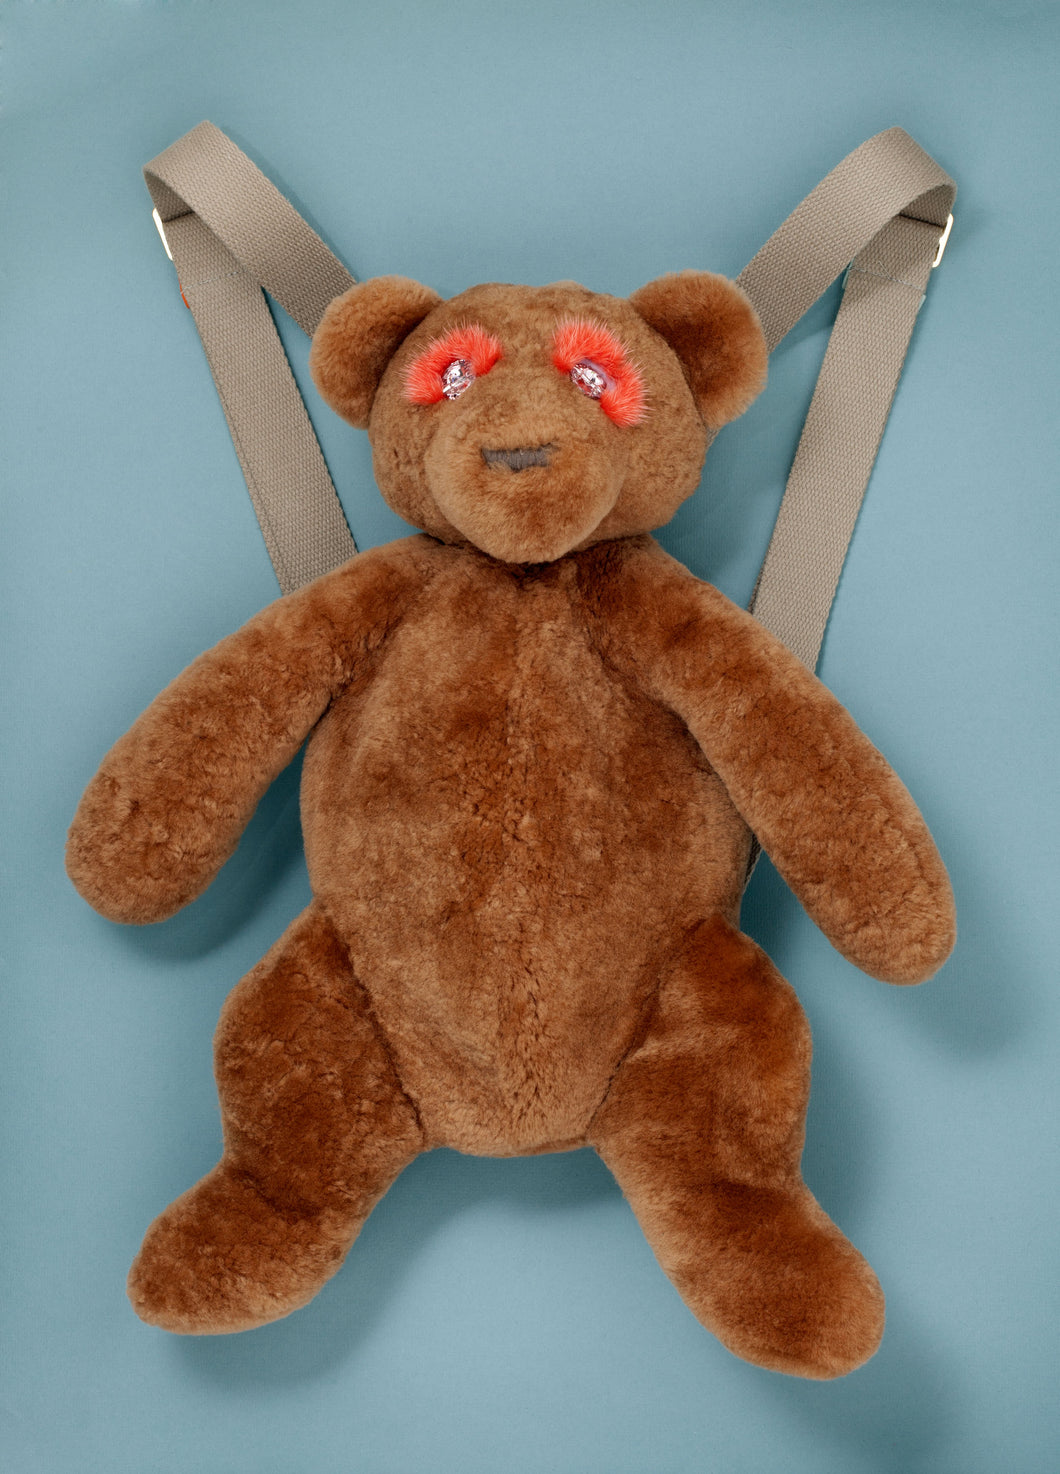 BROWN TEDDY MARLEY BACKPACK